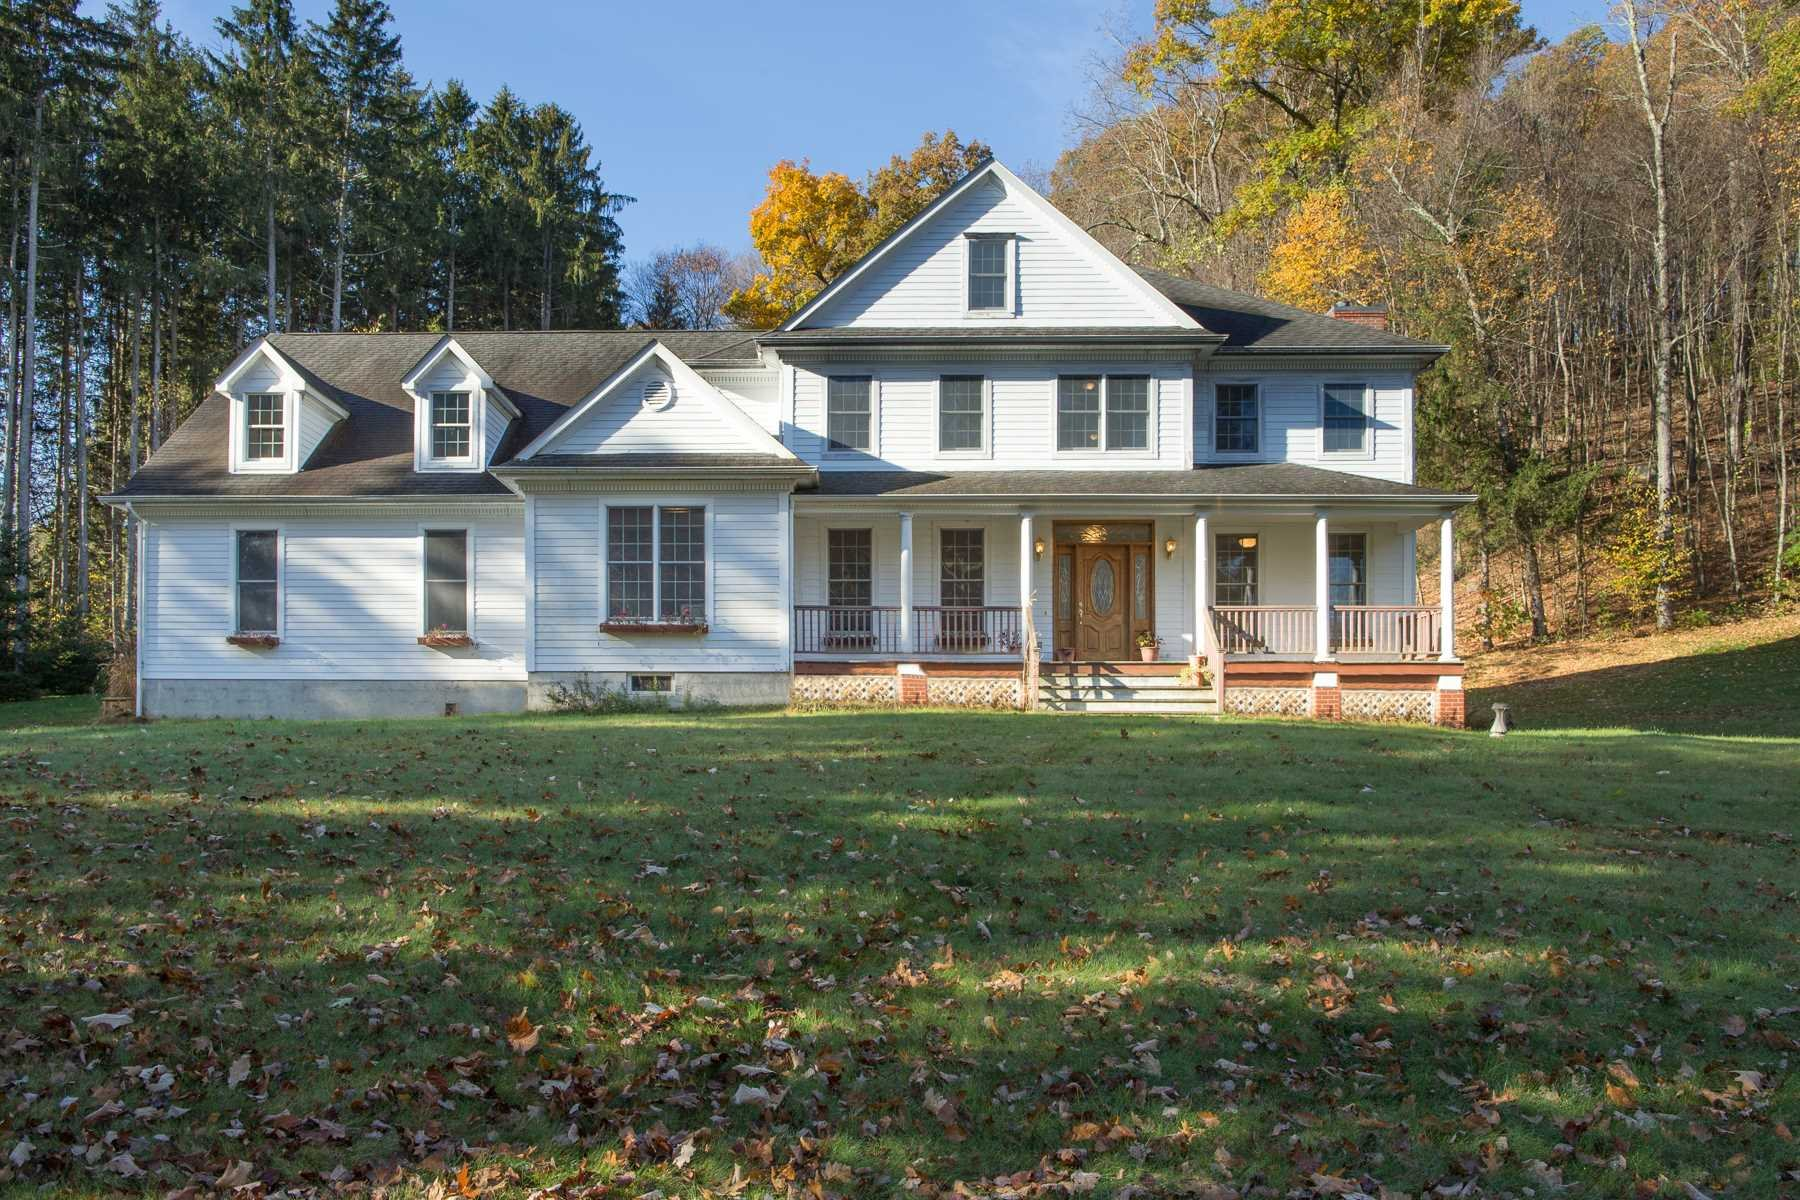 Single Family Home for Sale at 207 SUNSET HILL Road 207 SUNSET HILL Road La Grange, New York 12569 United States